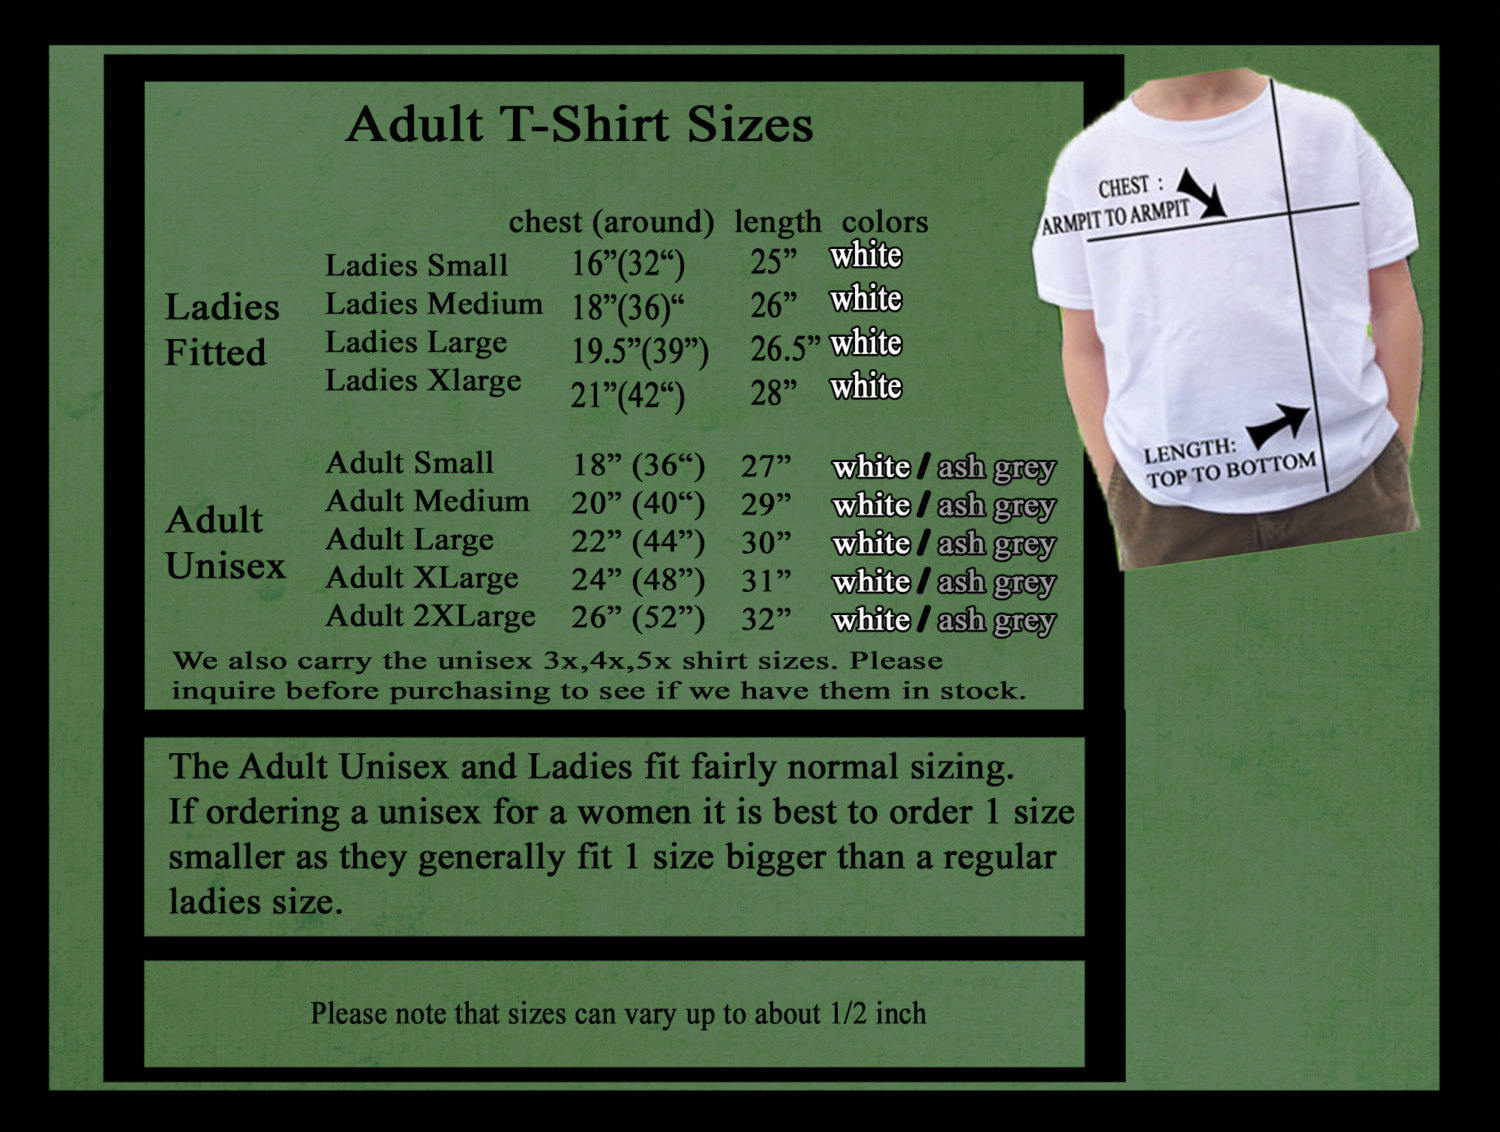 cb7dc1ce4 ADULT Dad Mom Aunt of the Birthday Boy Shirt - Dinosaur ADULT Shirt Dino  Birthday Shirt - Personalized name and age Matching Birthday Shirt